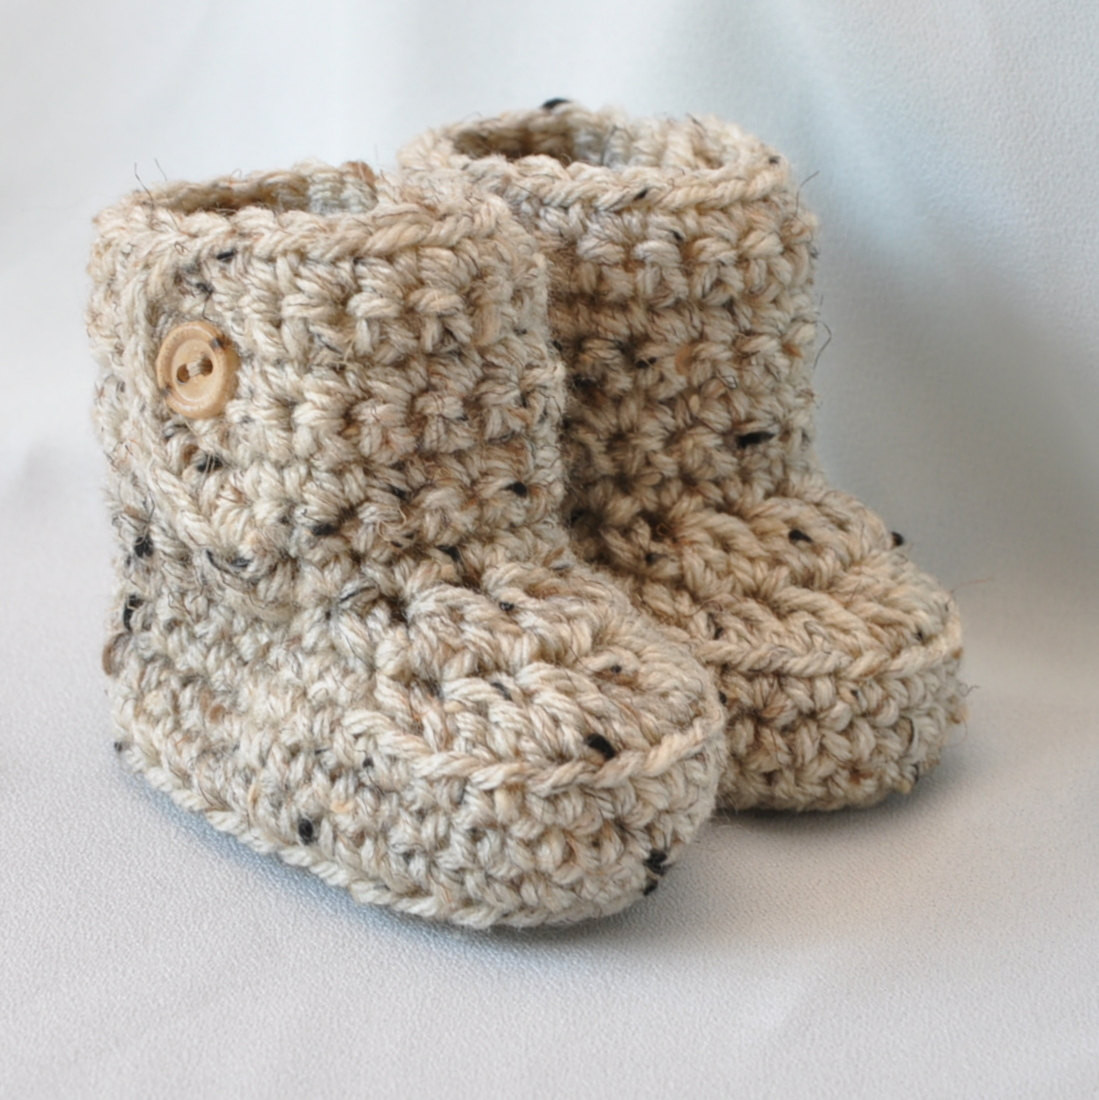 Free Crochet Patterns for Baby Booties Unique Baby Booties Crochet Baby Boots with button top Size 0 to 6 Of Luxury 40 Pictures Free Crochet Patterns for Baby Booties